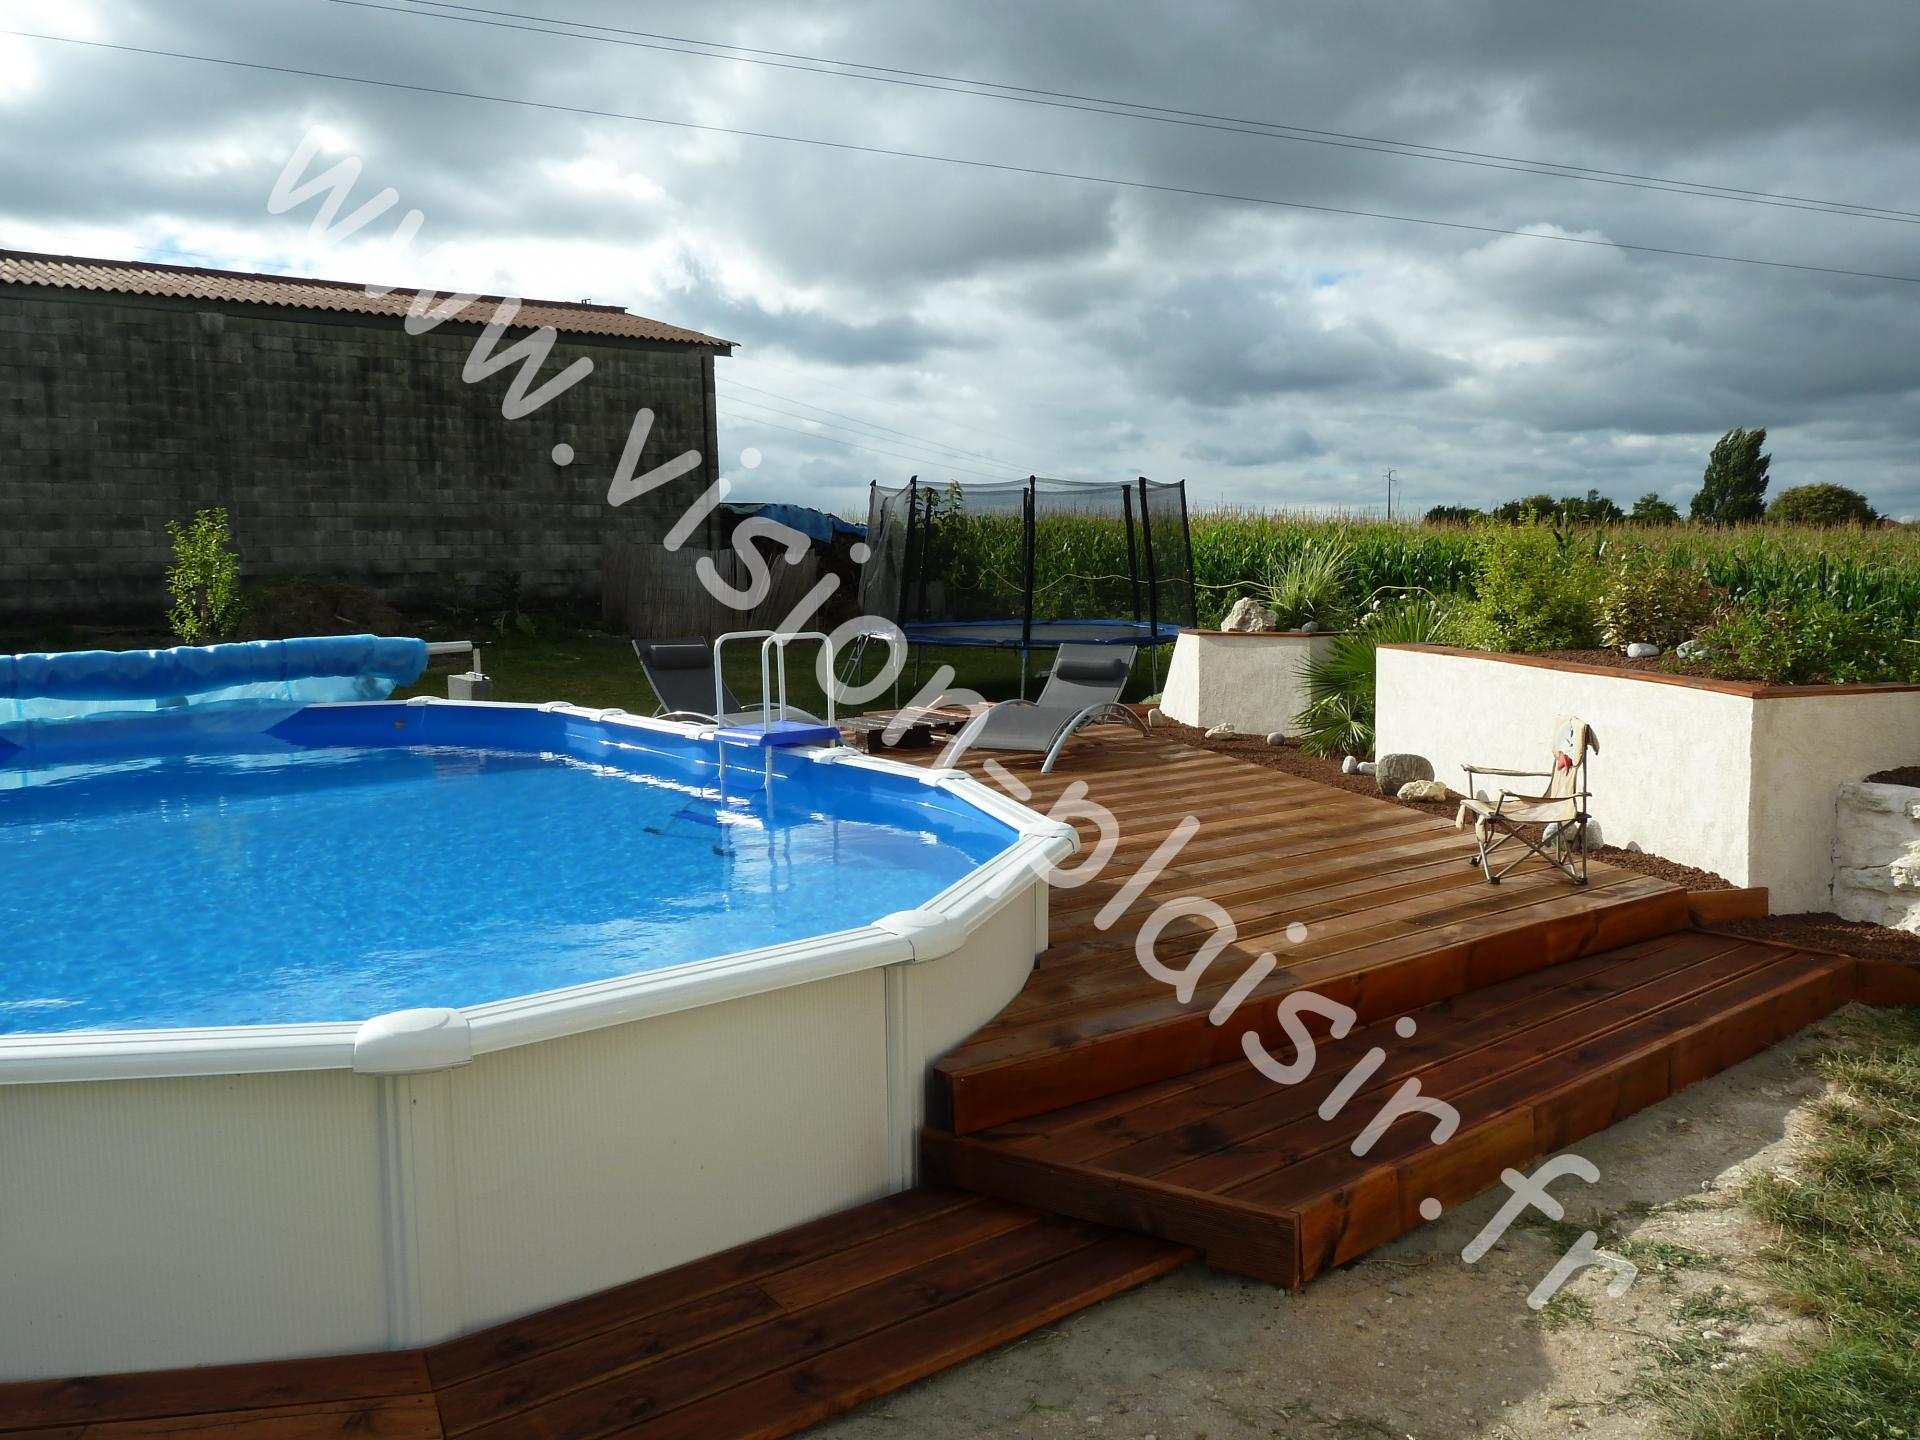 Blog de vision plaisir piscine hors sol semi enterr e for Piscine structure bois semi enterree